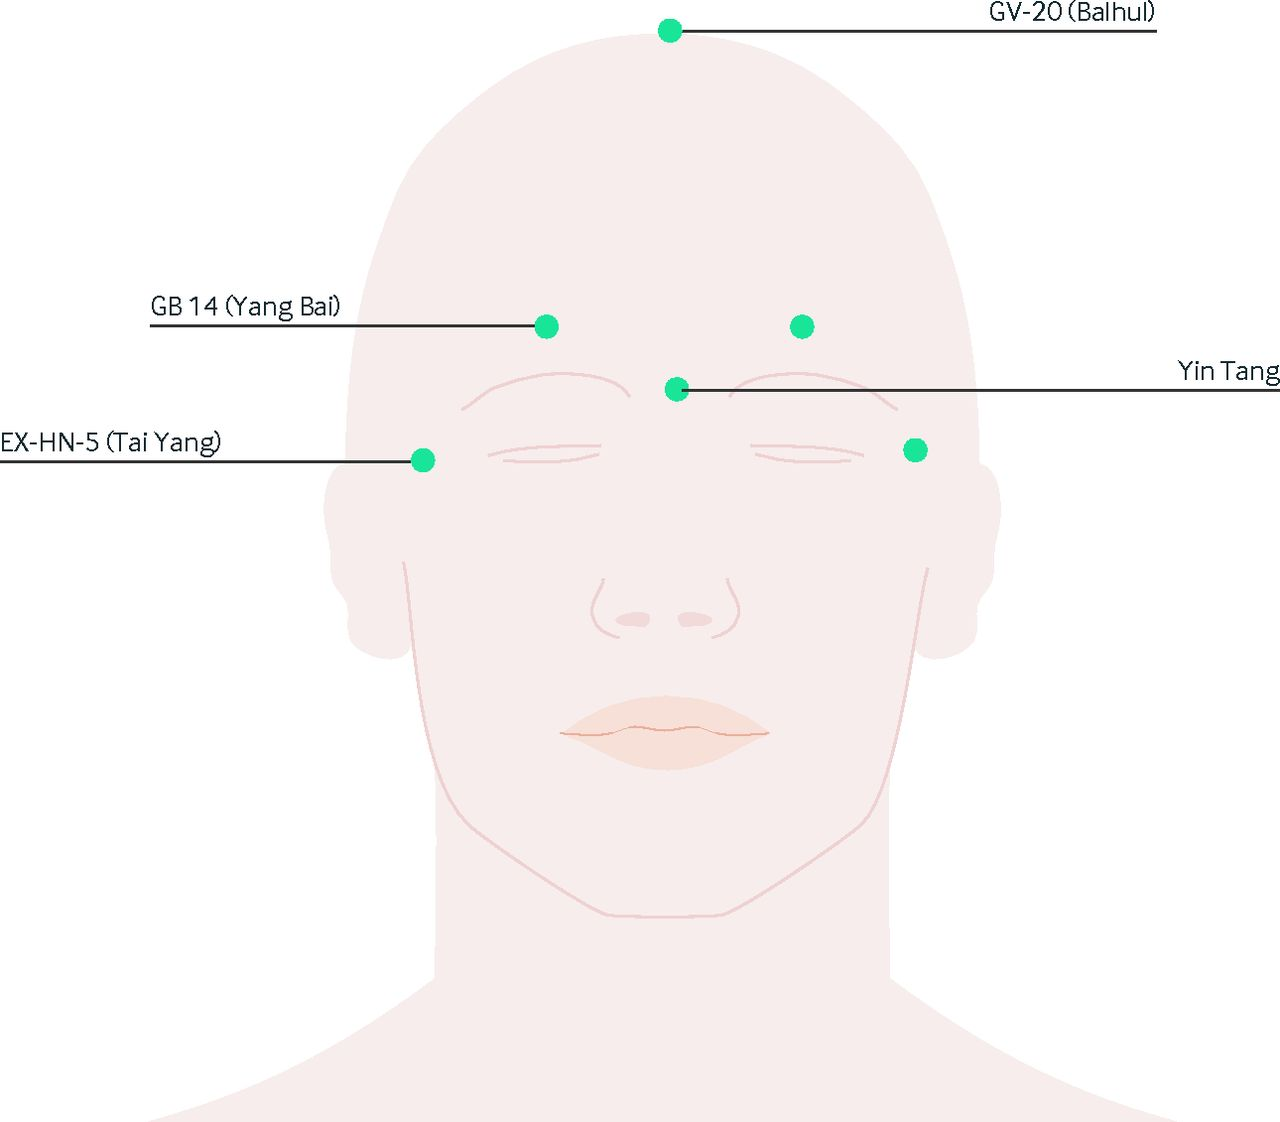 small resolution of fig 1 common acupuncture points on the face and head where needles are inserted in combinations to treat various types of headaches